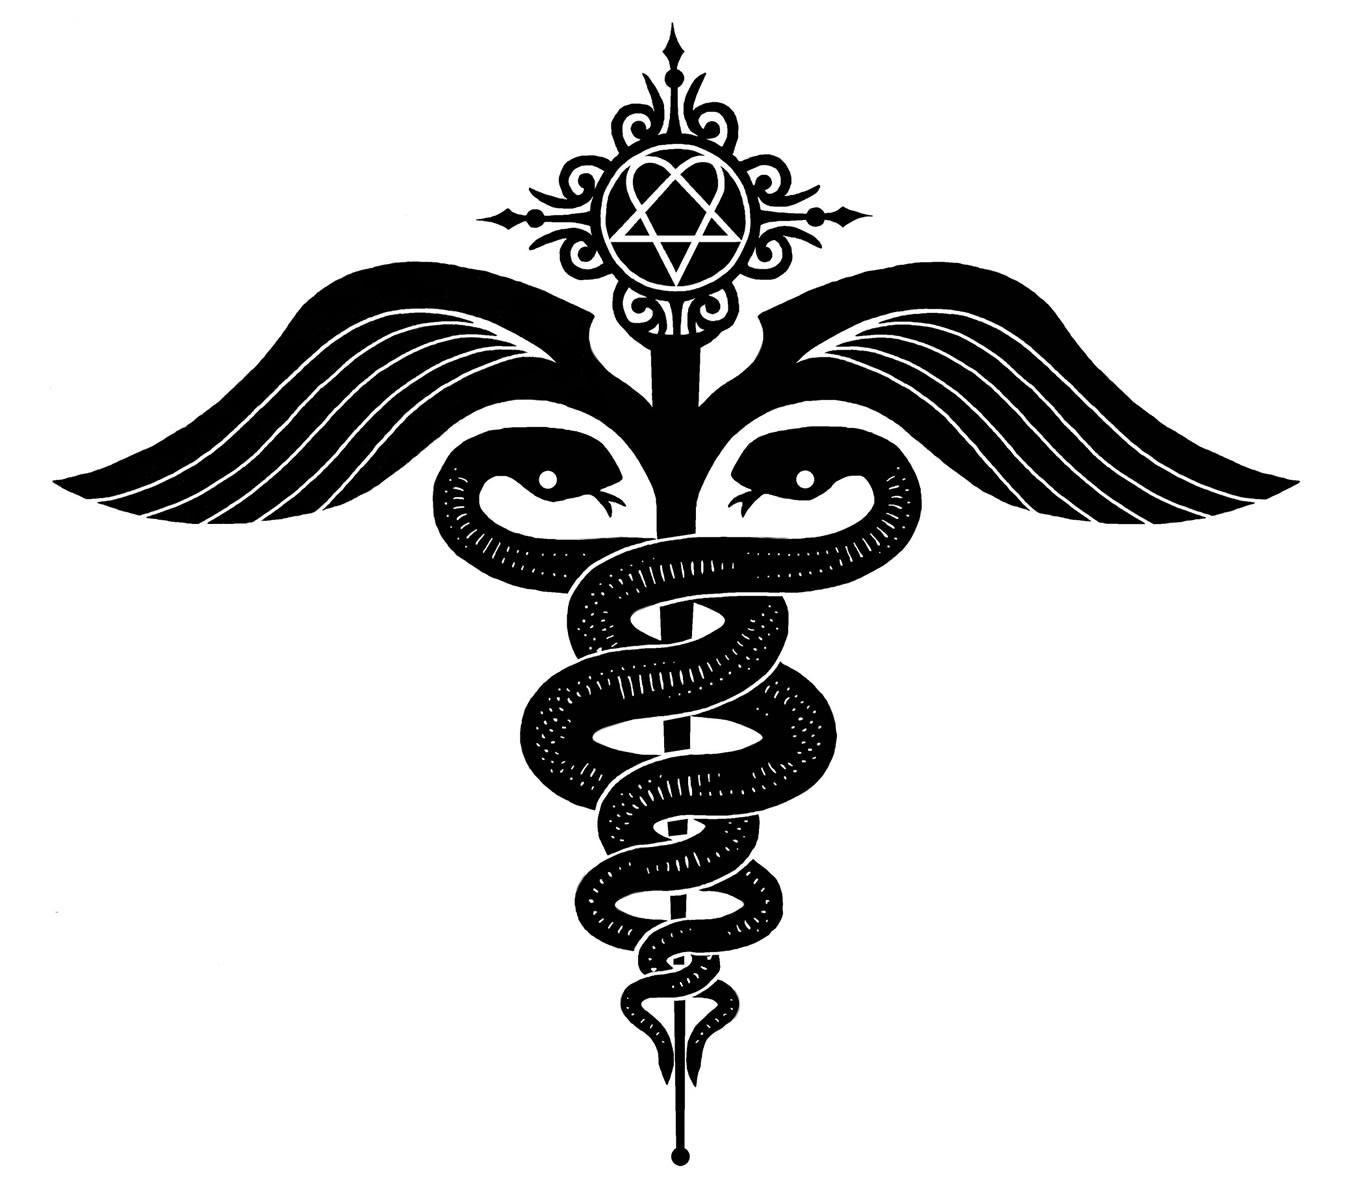 Infp the healer to be wise like the serpent yet gentle as the logos for caduceus medical symbol tattoo buycottarizona Image collections